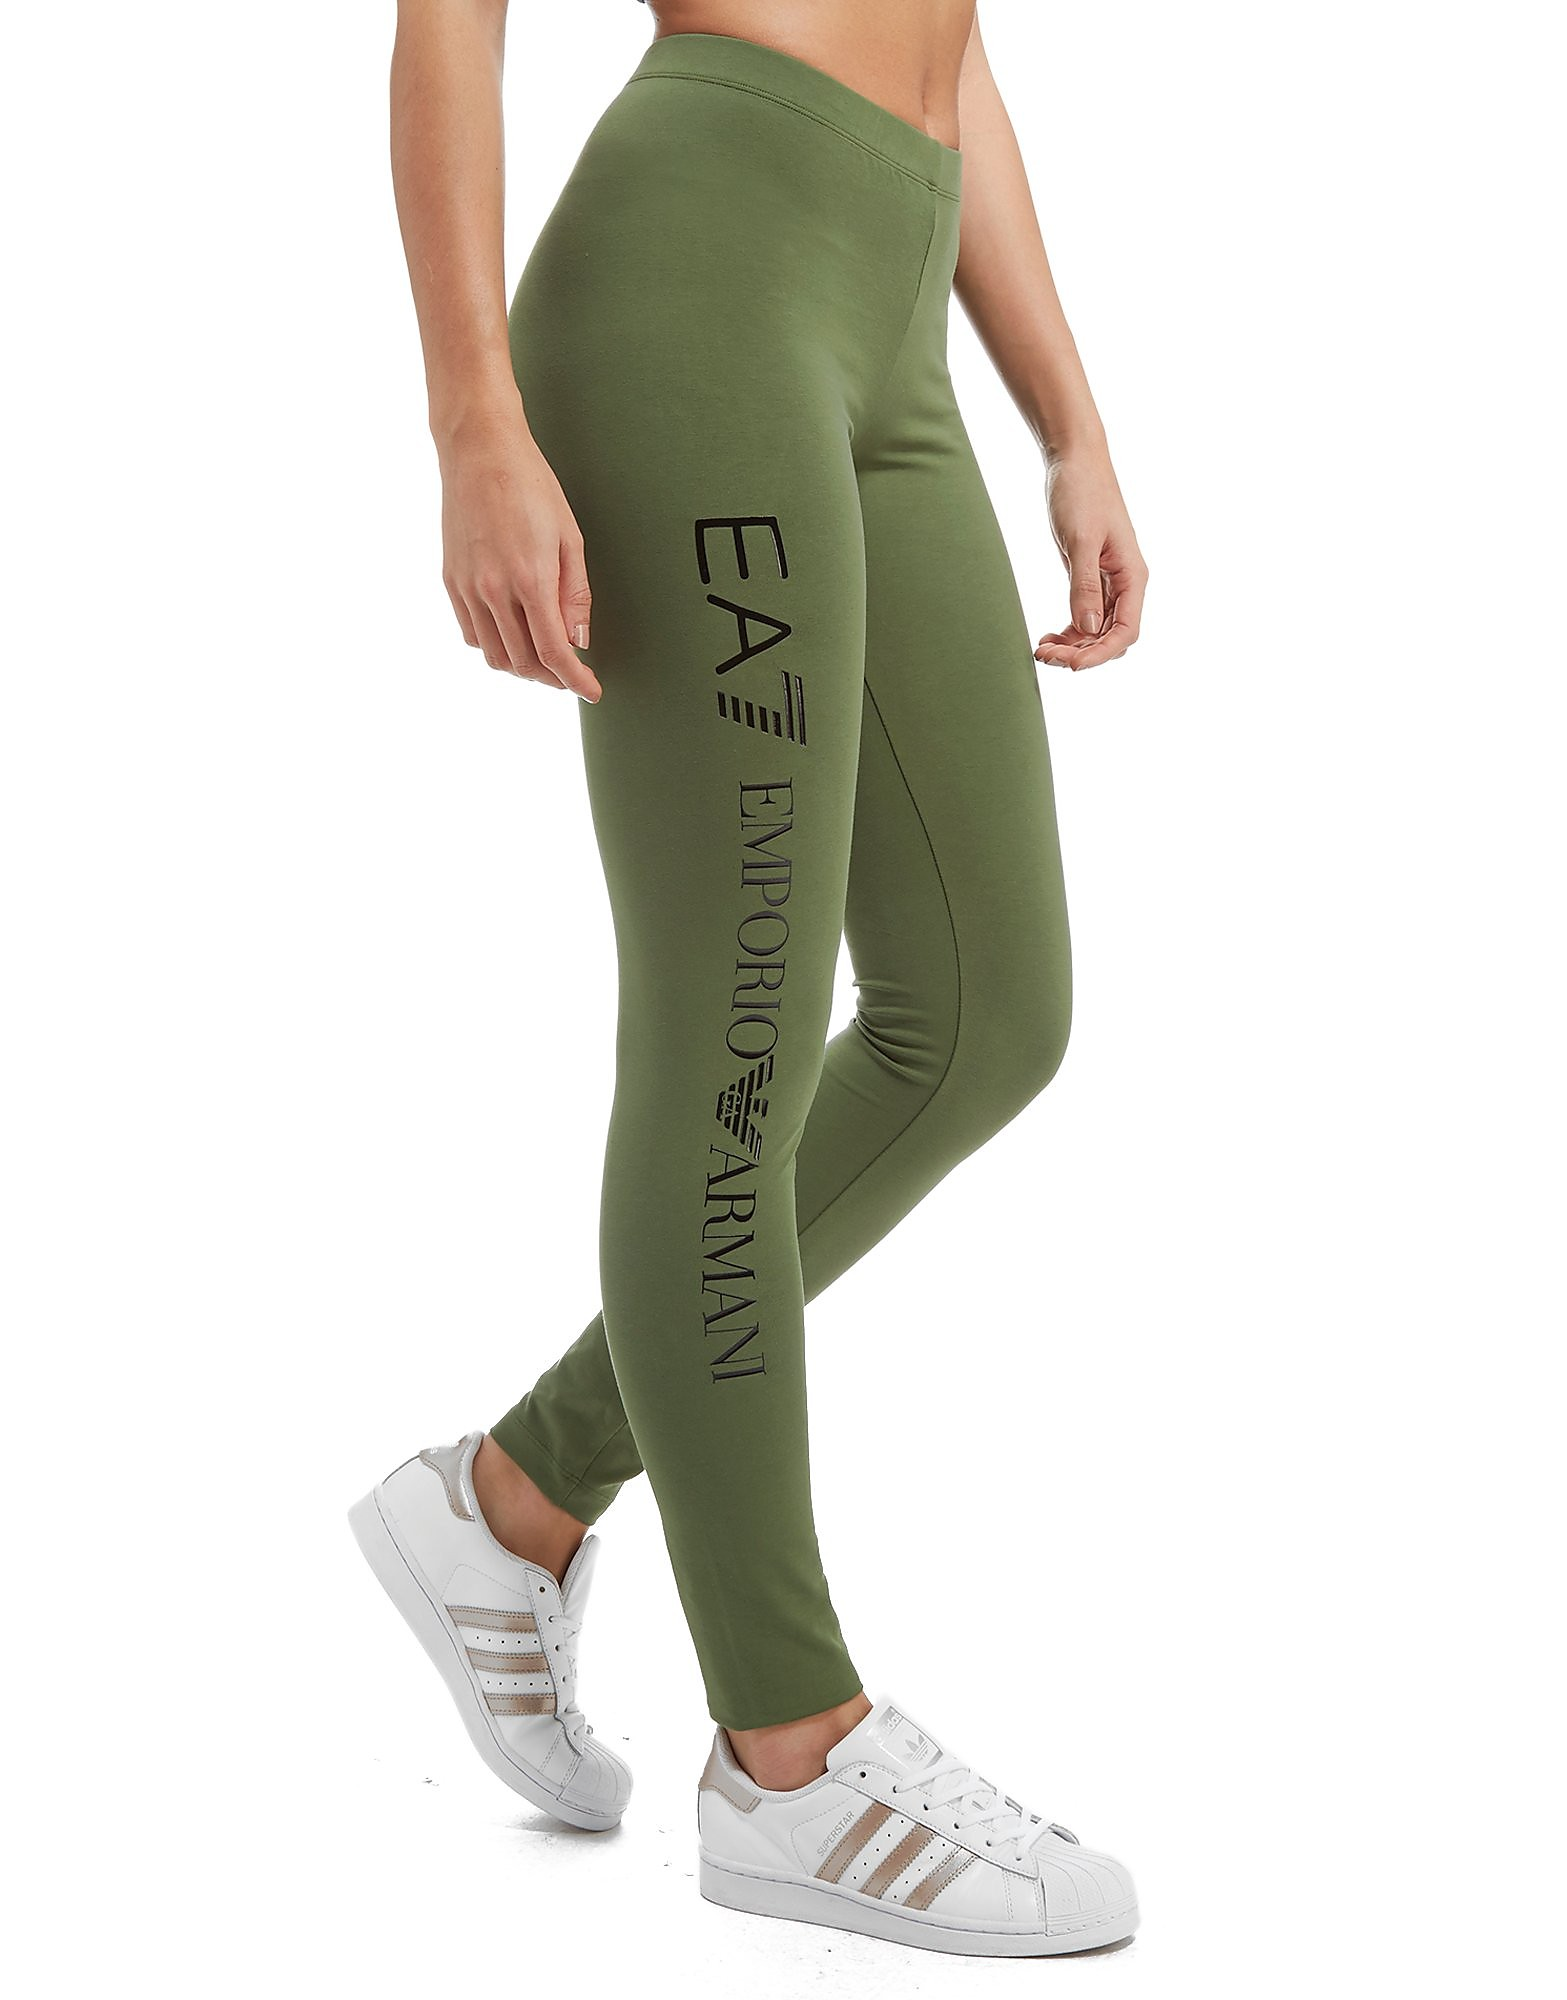 Emporio Armani EA7 Leggings Dames